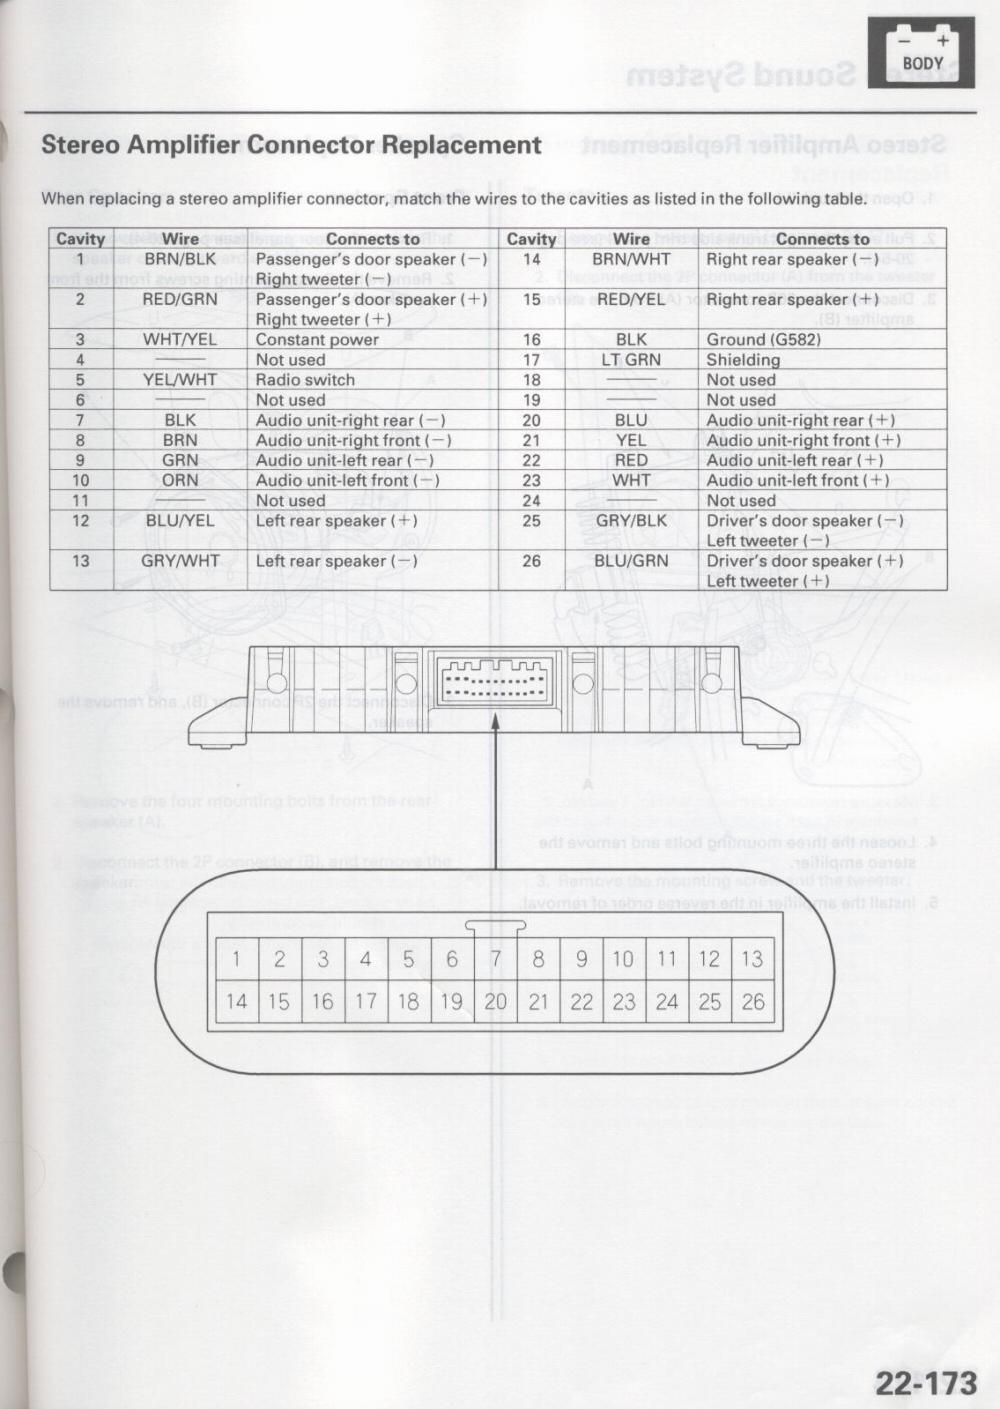 Acura 2002 TL car stereo amplifier wiring diagram harness car radio stereo audio wiring diagram autoradio connector wire  at edmiracle.co